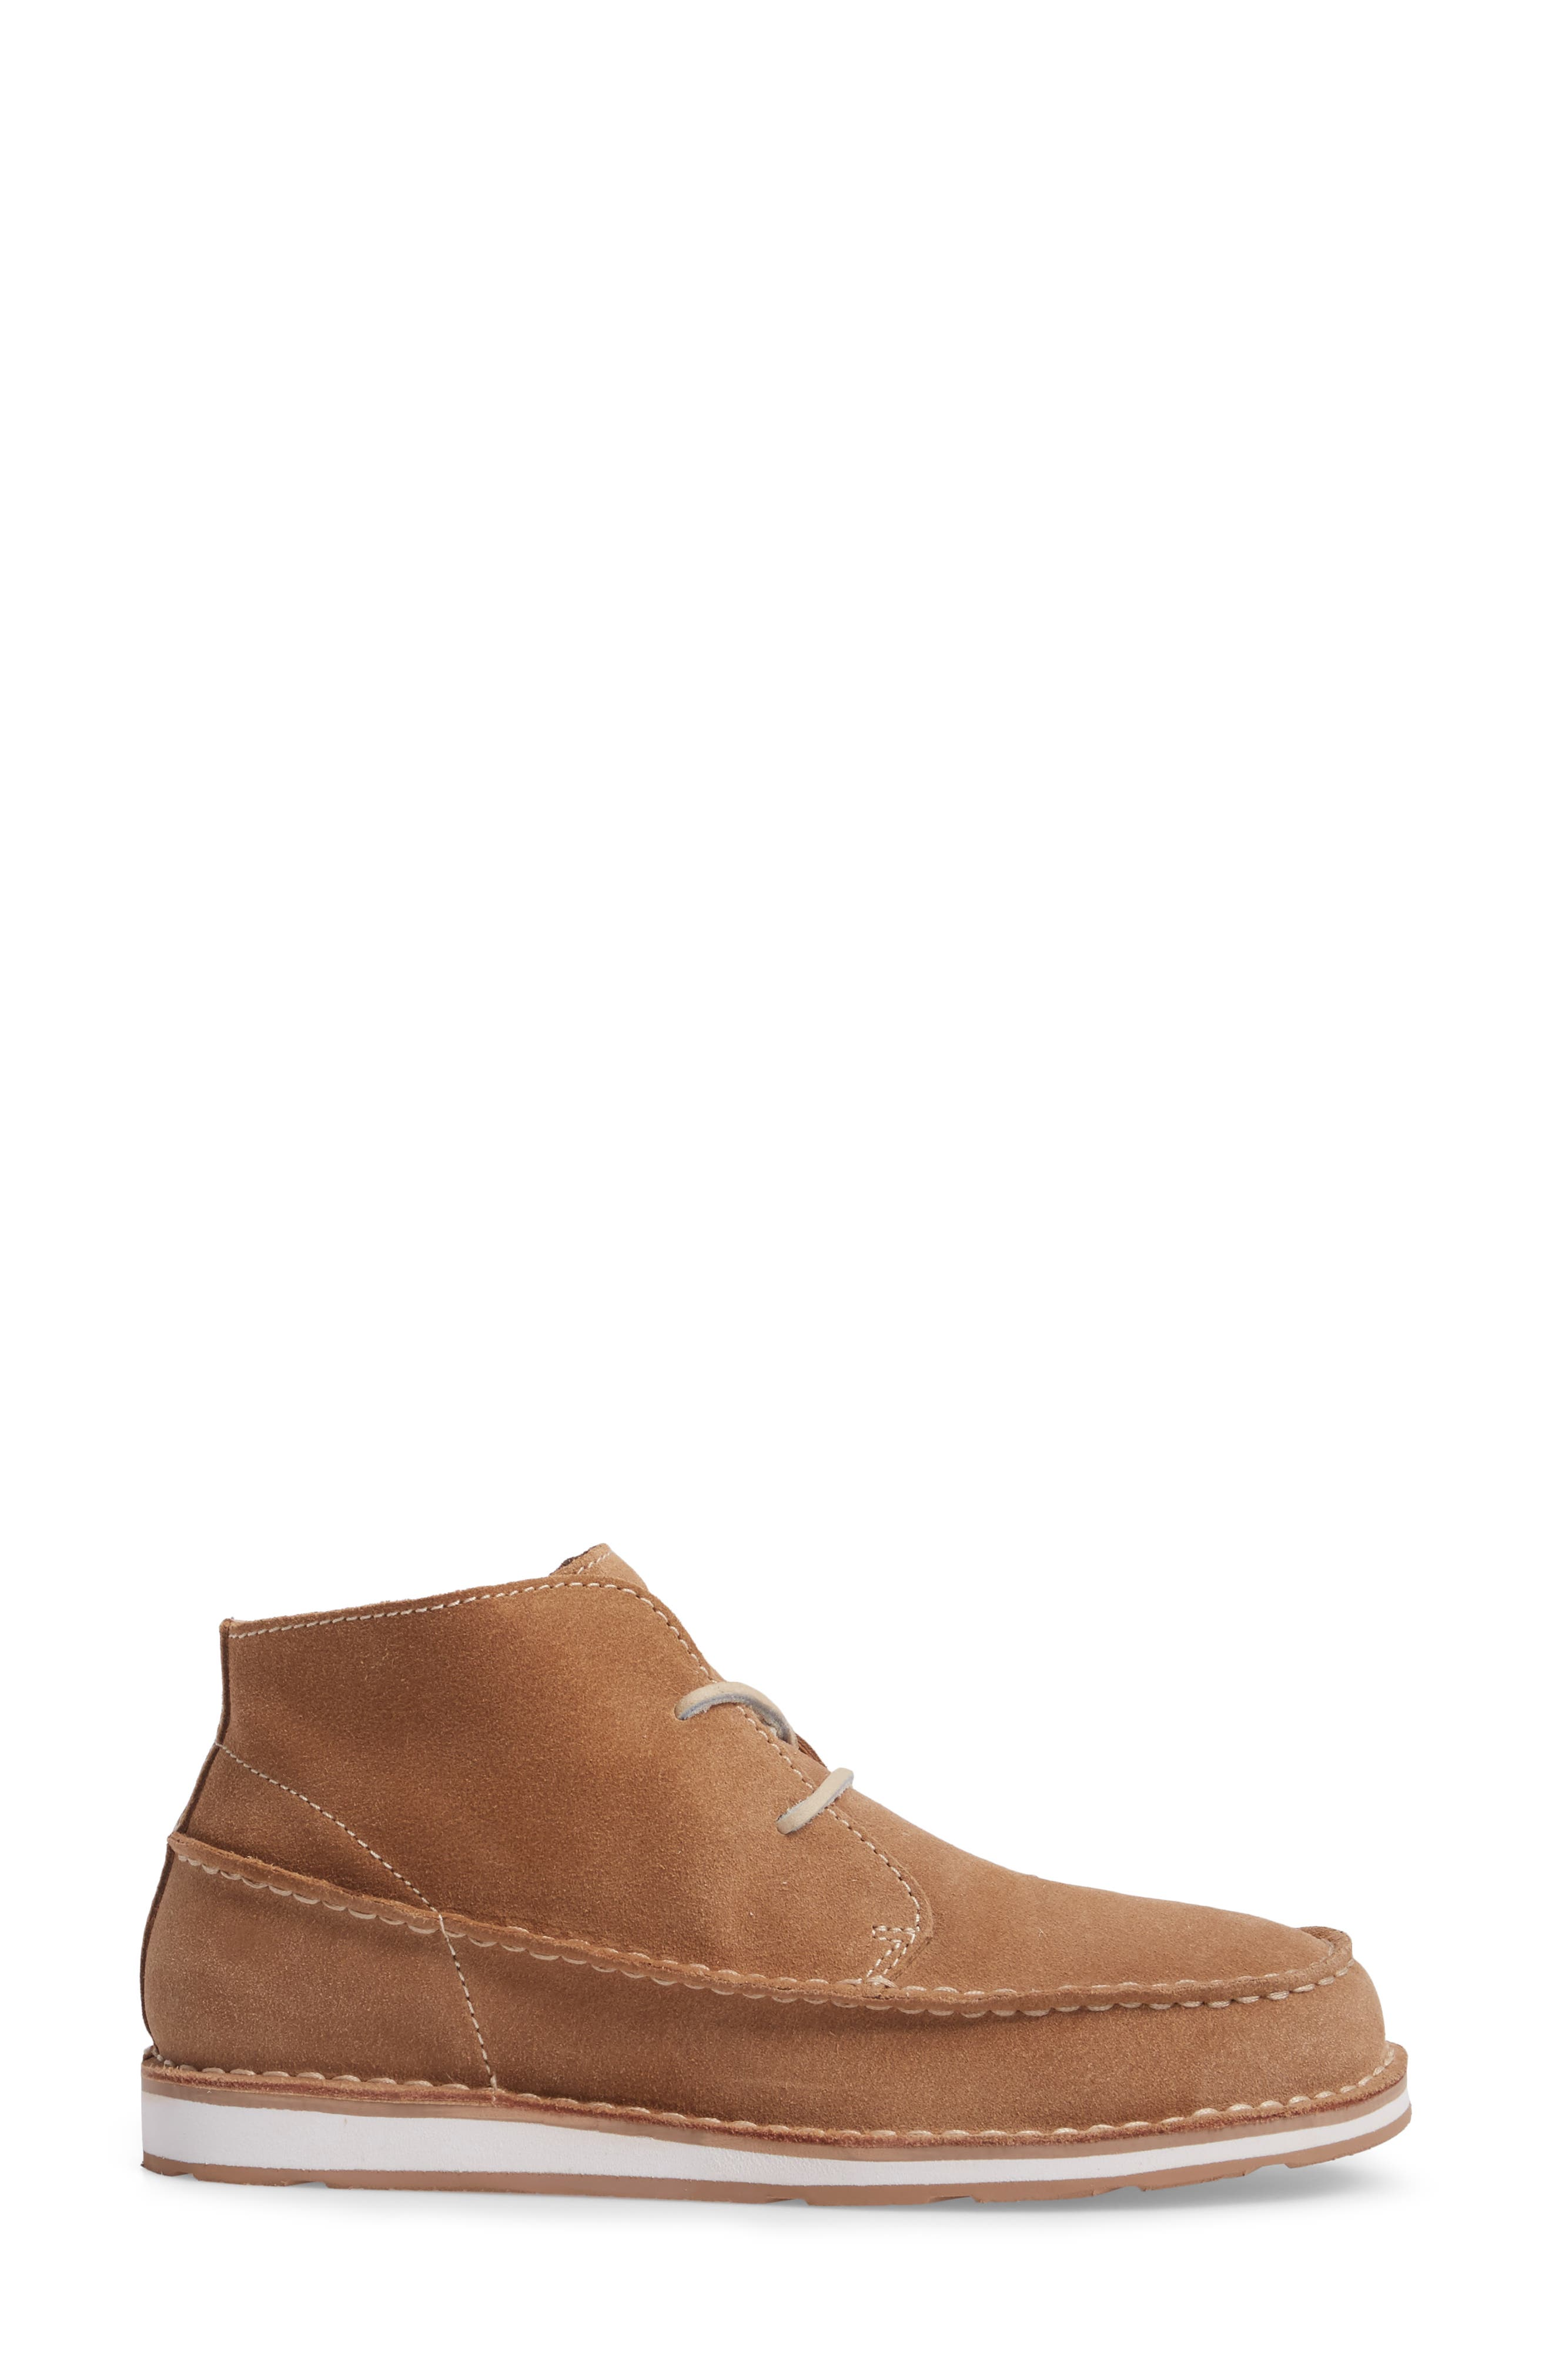 Cruiser Chukka Boot,                             Alternate thumbnail 3, color,                             Lace Dirty Taupe Suede